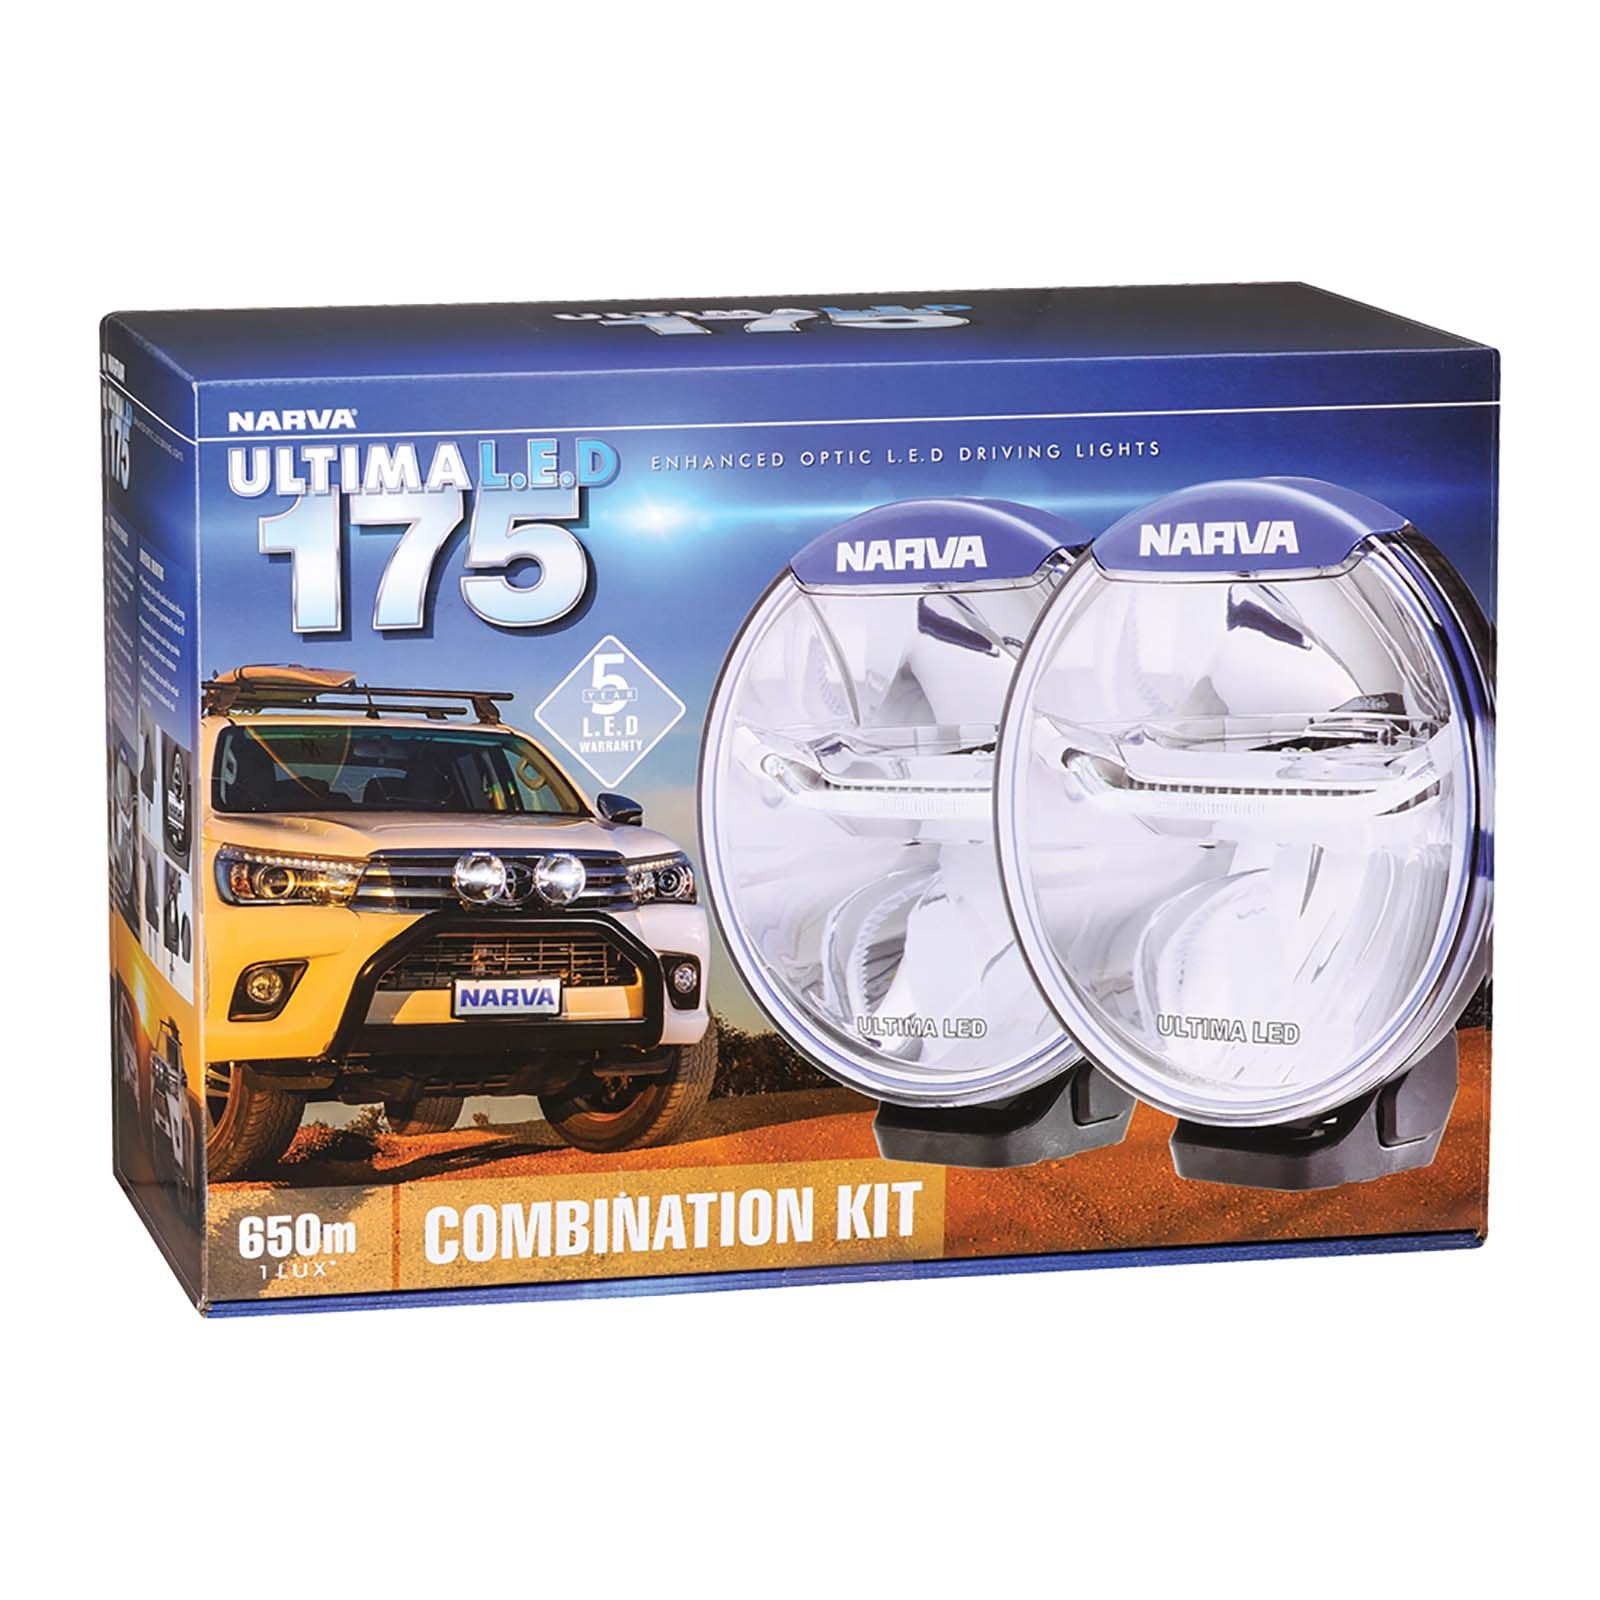 Driving L e Combination Light d Kit NarvaUltima 175 Y7gyf6bv